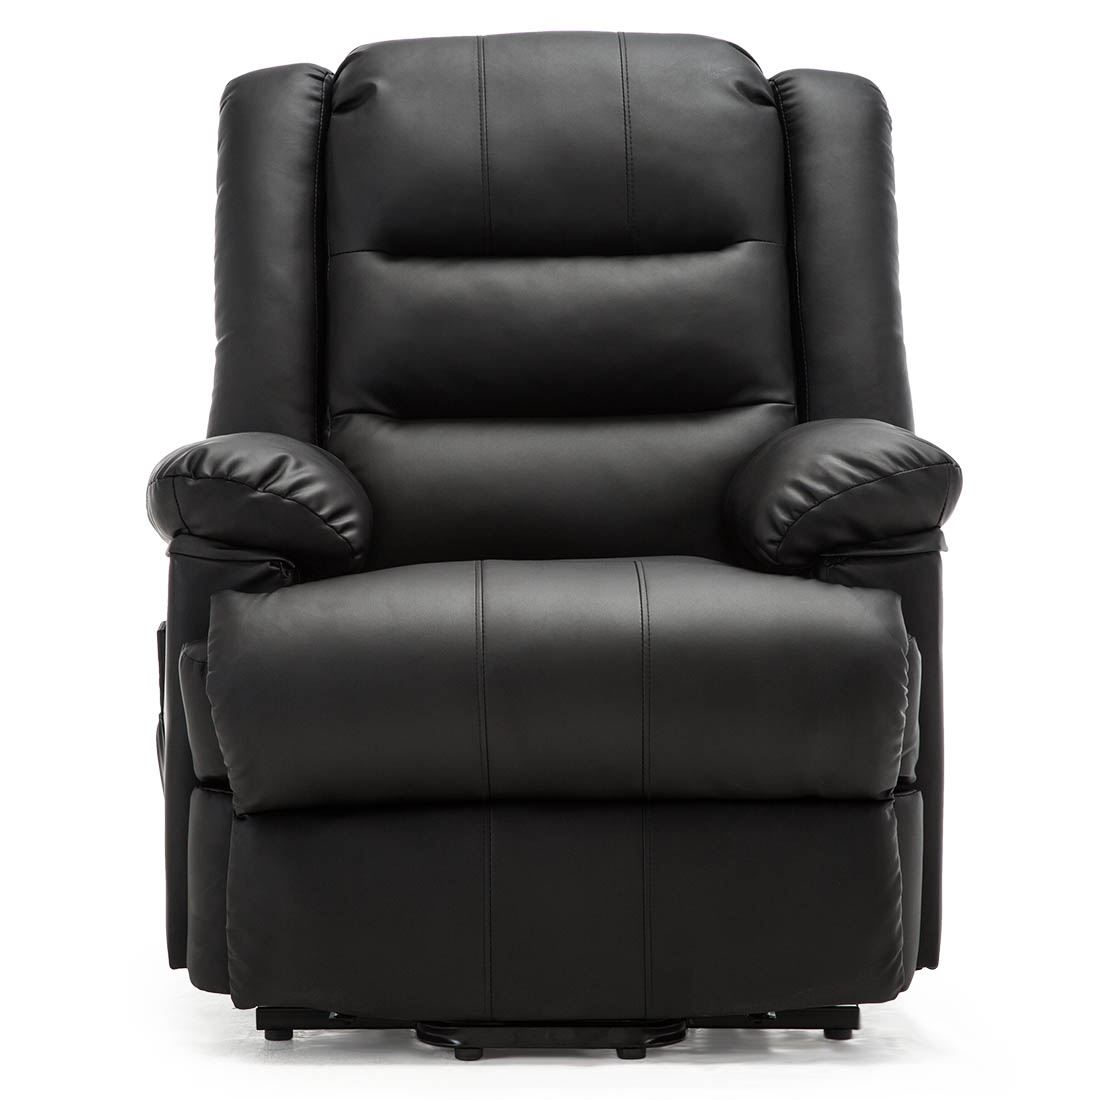 LOXLEY ELECTRIC RISE RECLINER ARMCHAIR BONDED LEATHER SOFA ...